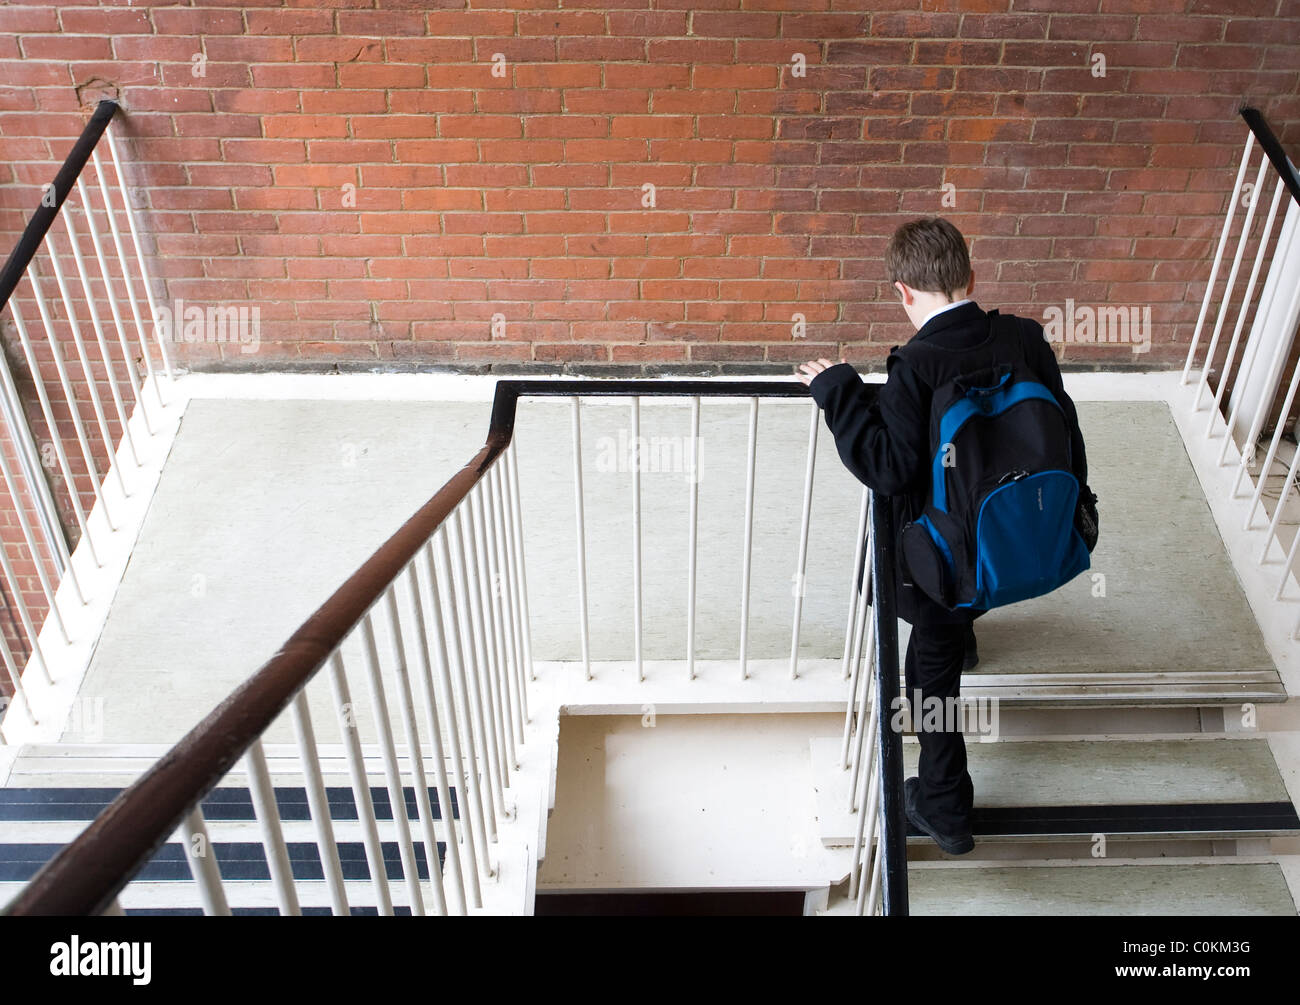 Pupils climb steps at Maidstone Grammar school in Maidstone, Kent, U.K. - Stock Image